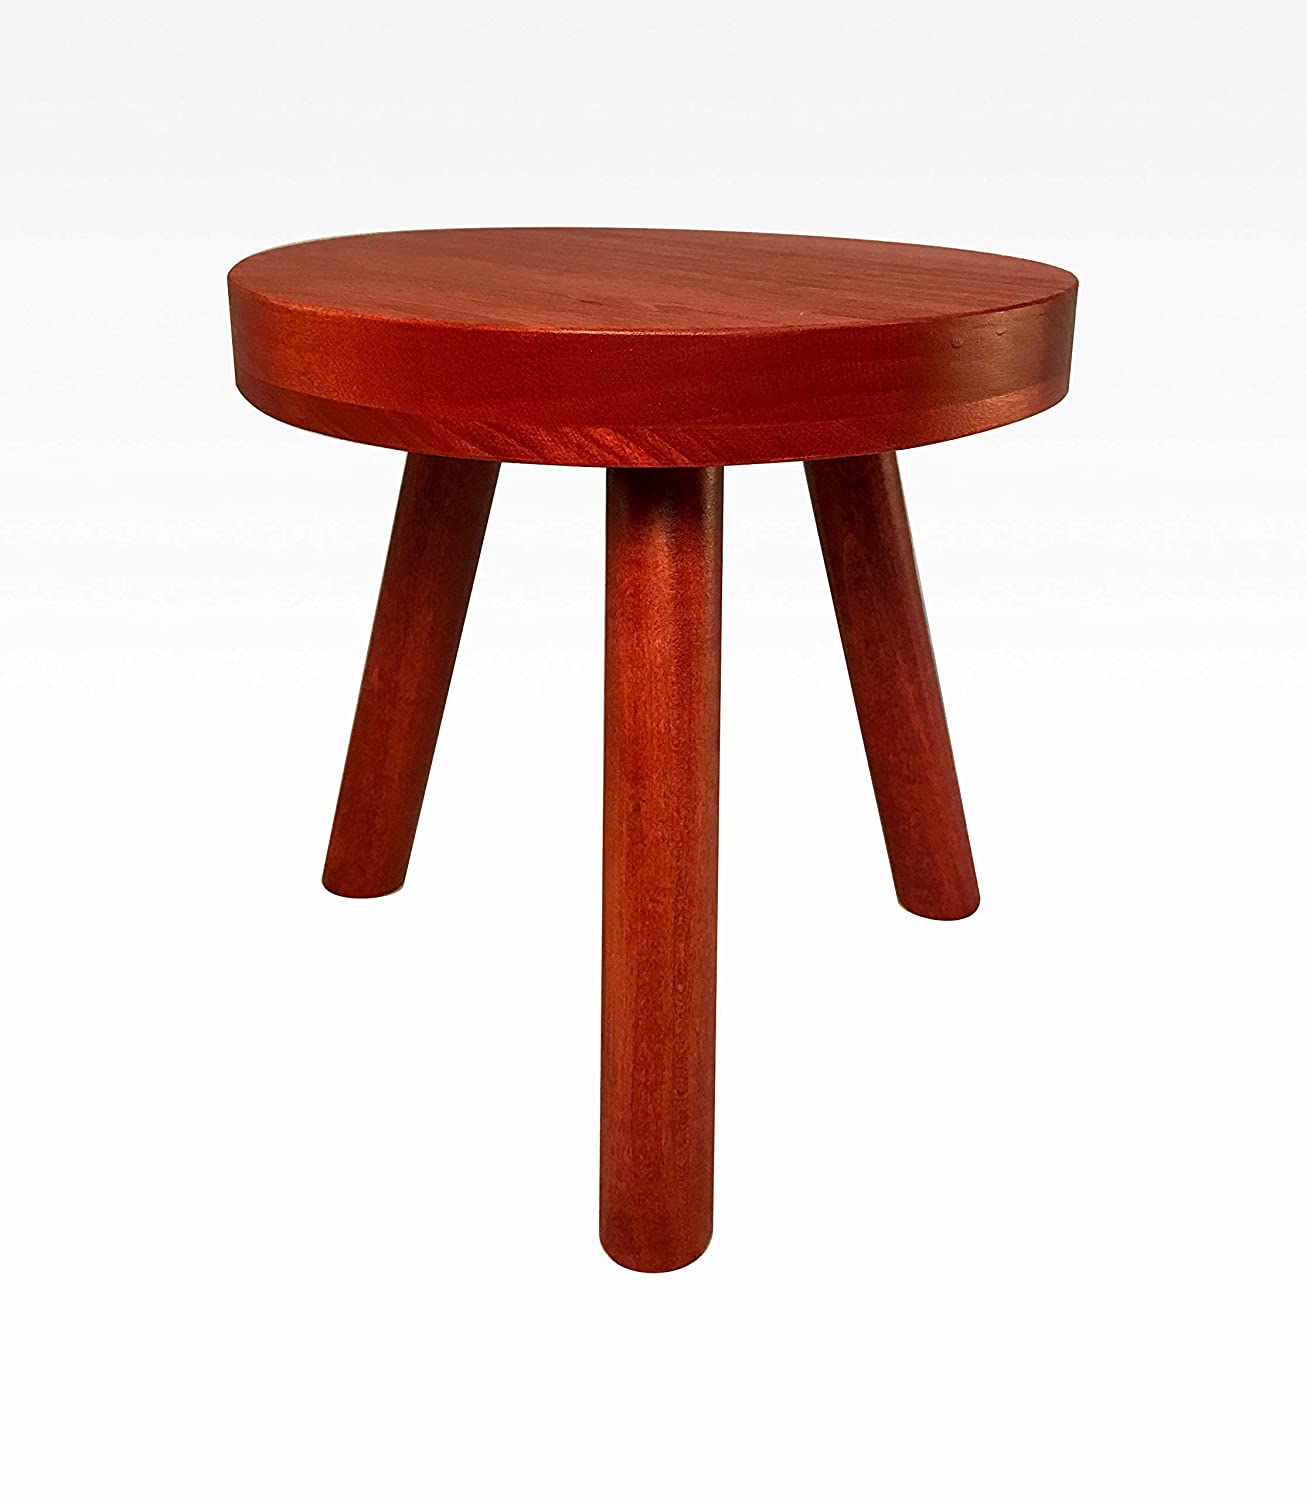 Terrific Modern Plant Stand Three Leg Stool By Cw Furniture Wood Indoor Flower Pot Base Display Holder Solid Wooden Kids Chair Table Simple Minimalist Small Squirreltailoven Fun Painted Chair Ideas Images Squirreltailovenorg